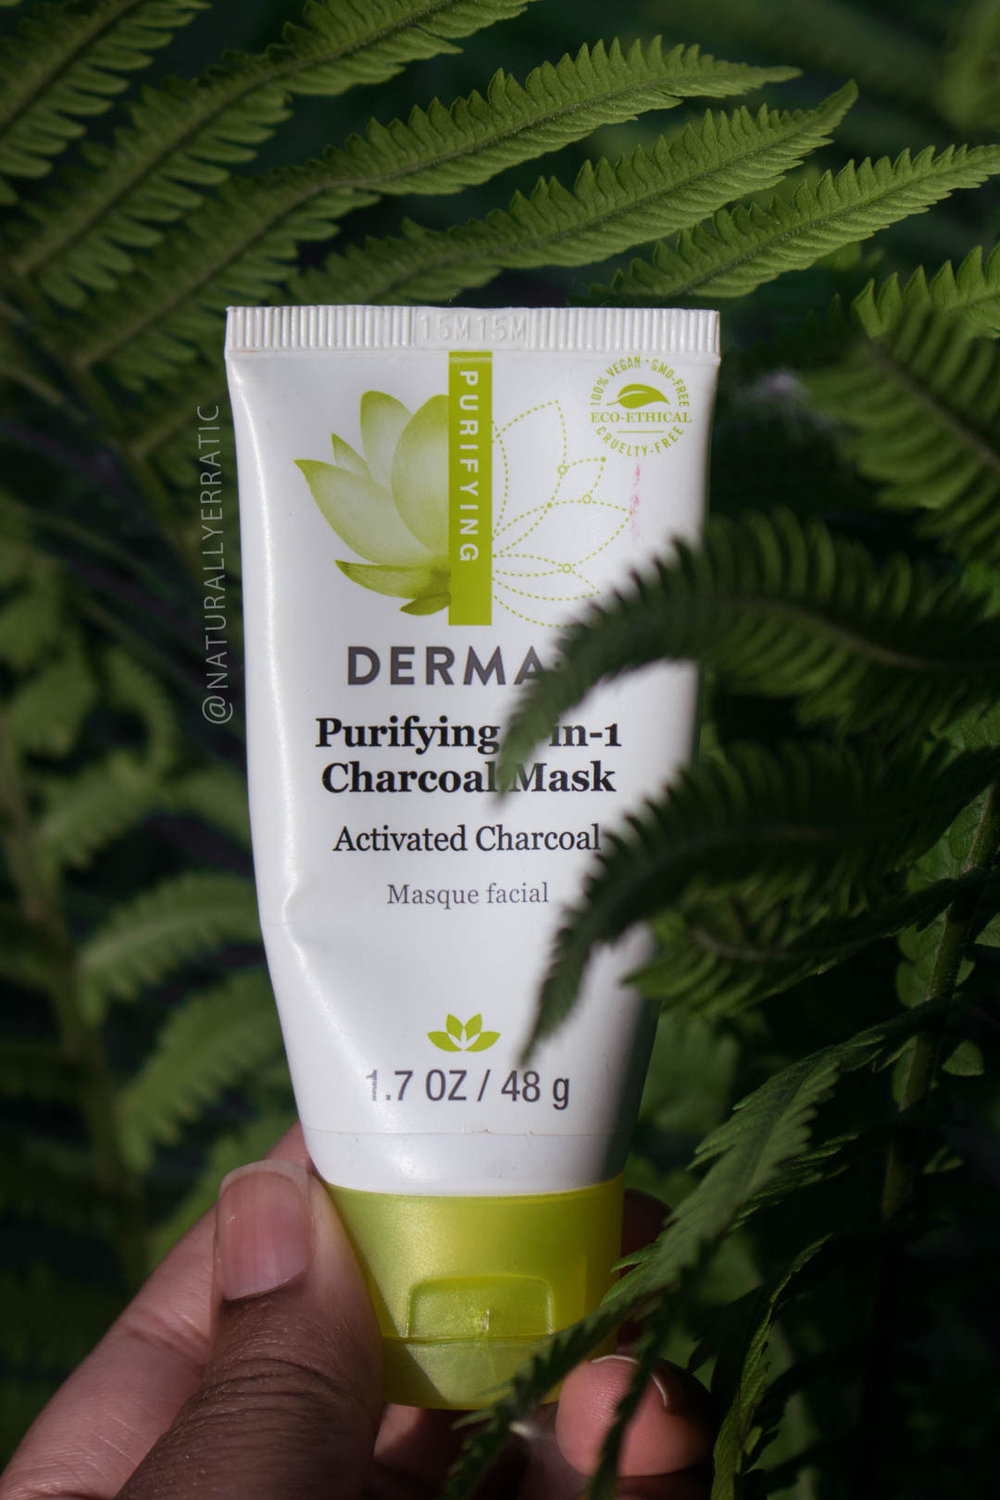 derma e purifying charcoal mask review